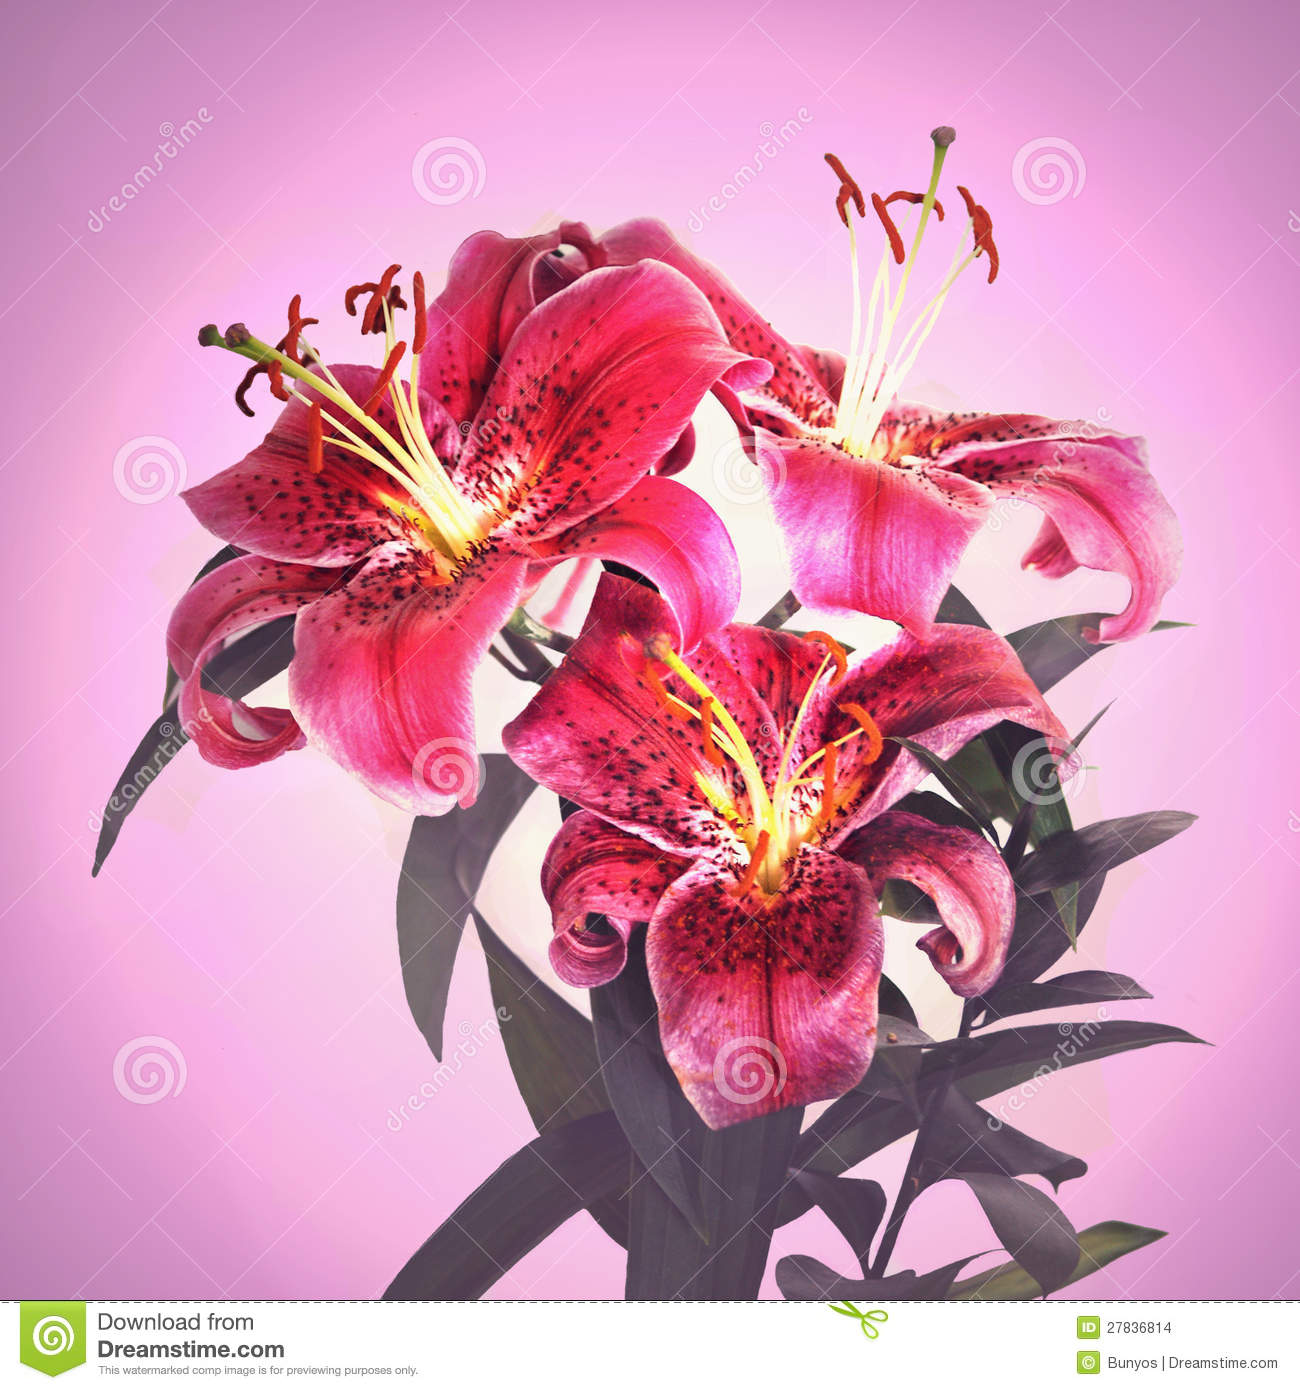 Beautiful pink tiger lily flower stock photo image of flowers download beautiful pink tiger lily flower stock photo image of flowers single 27836814 izmirmasajfo